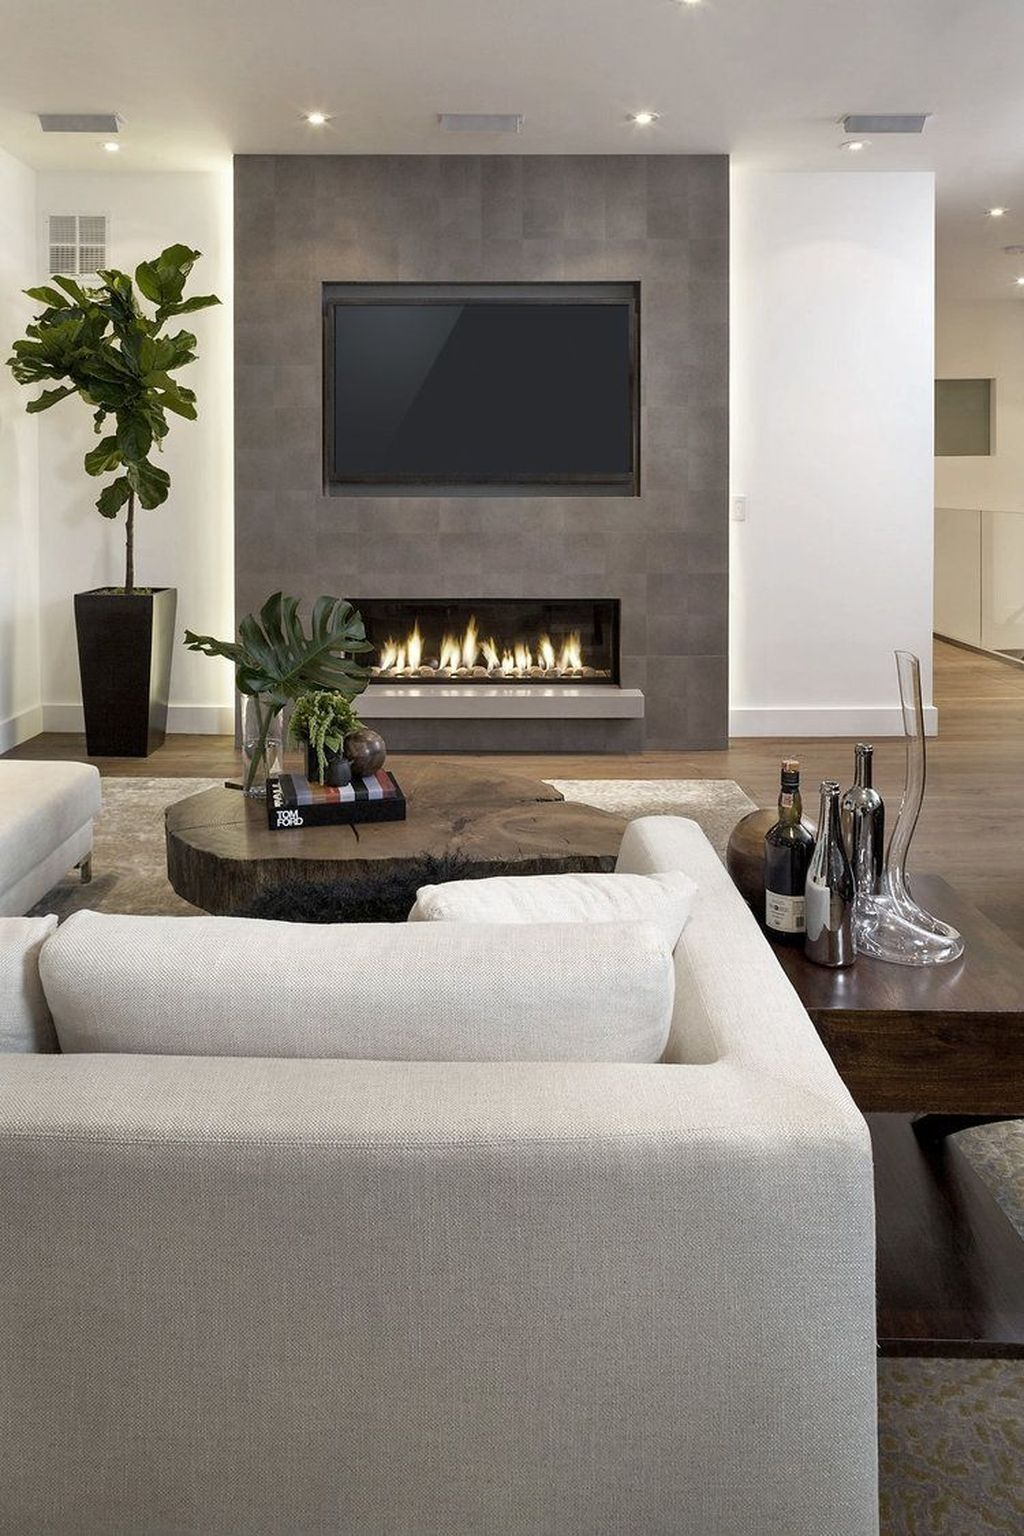 40 Stunning Living Room Decoration Ideas With Firep